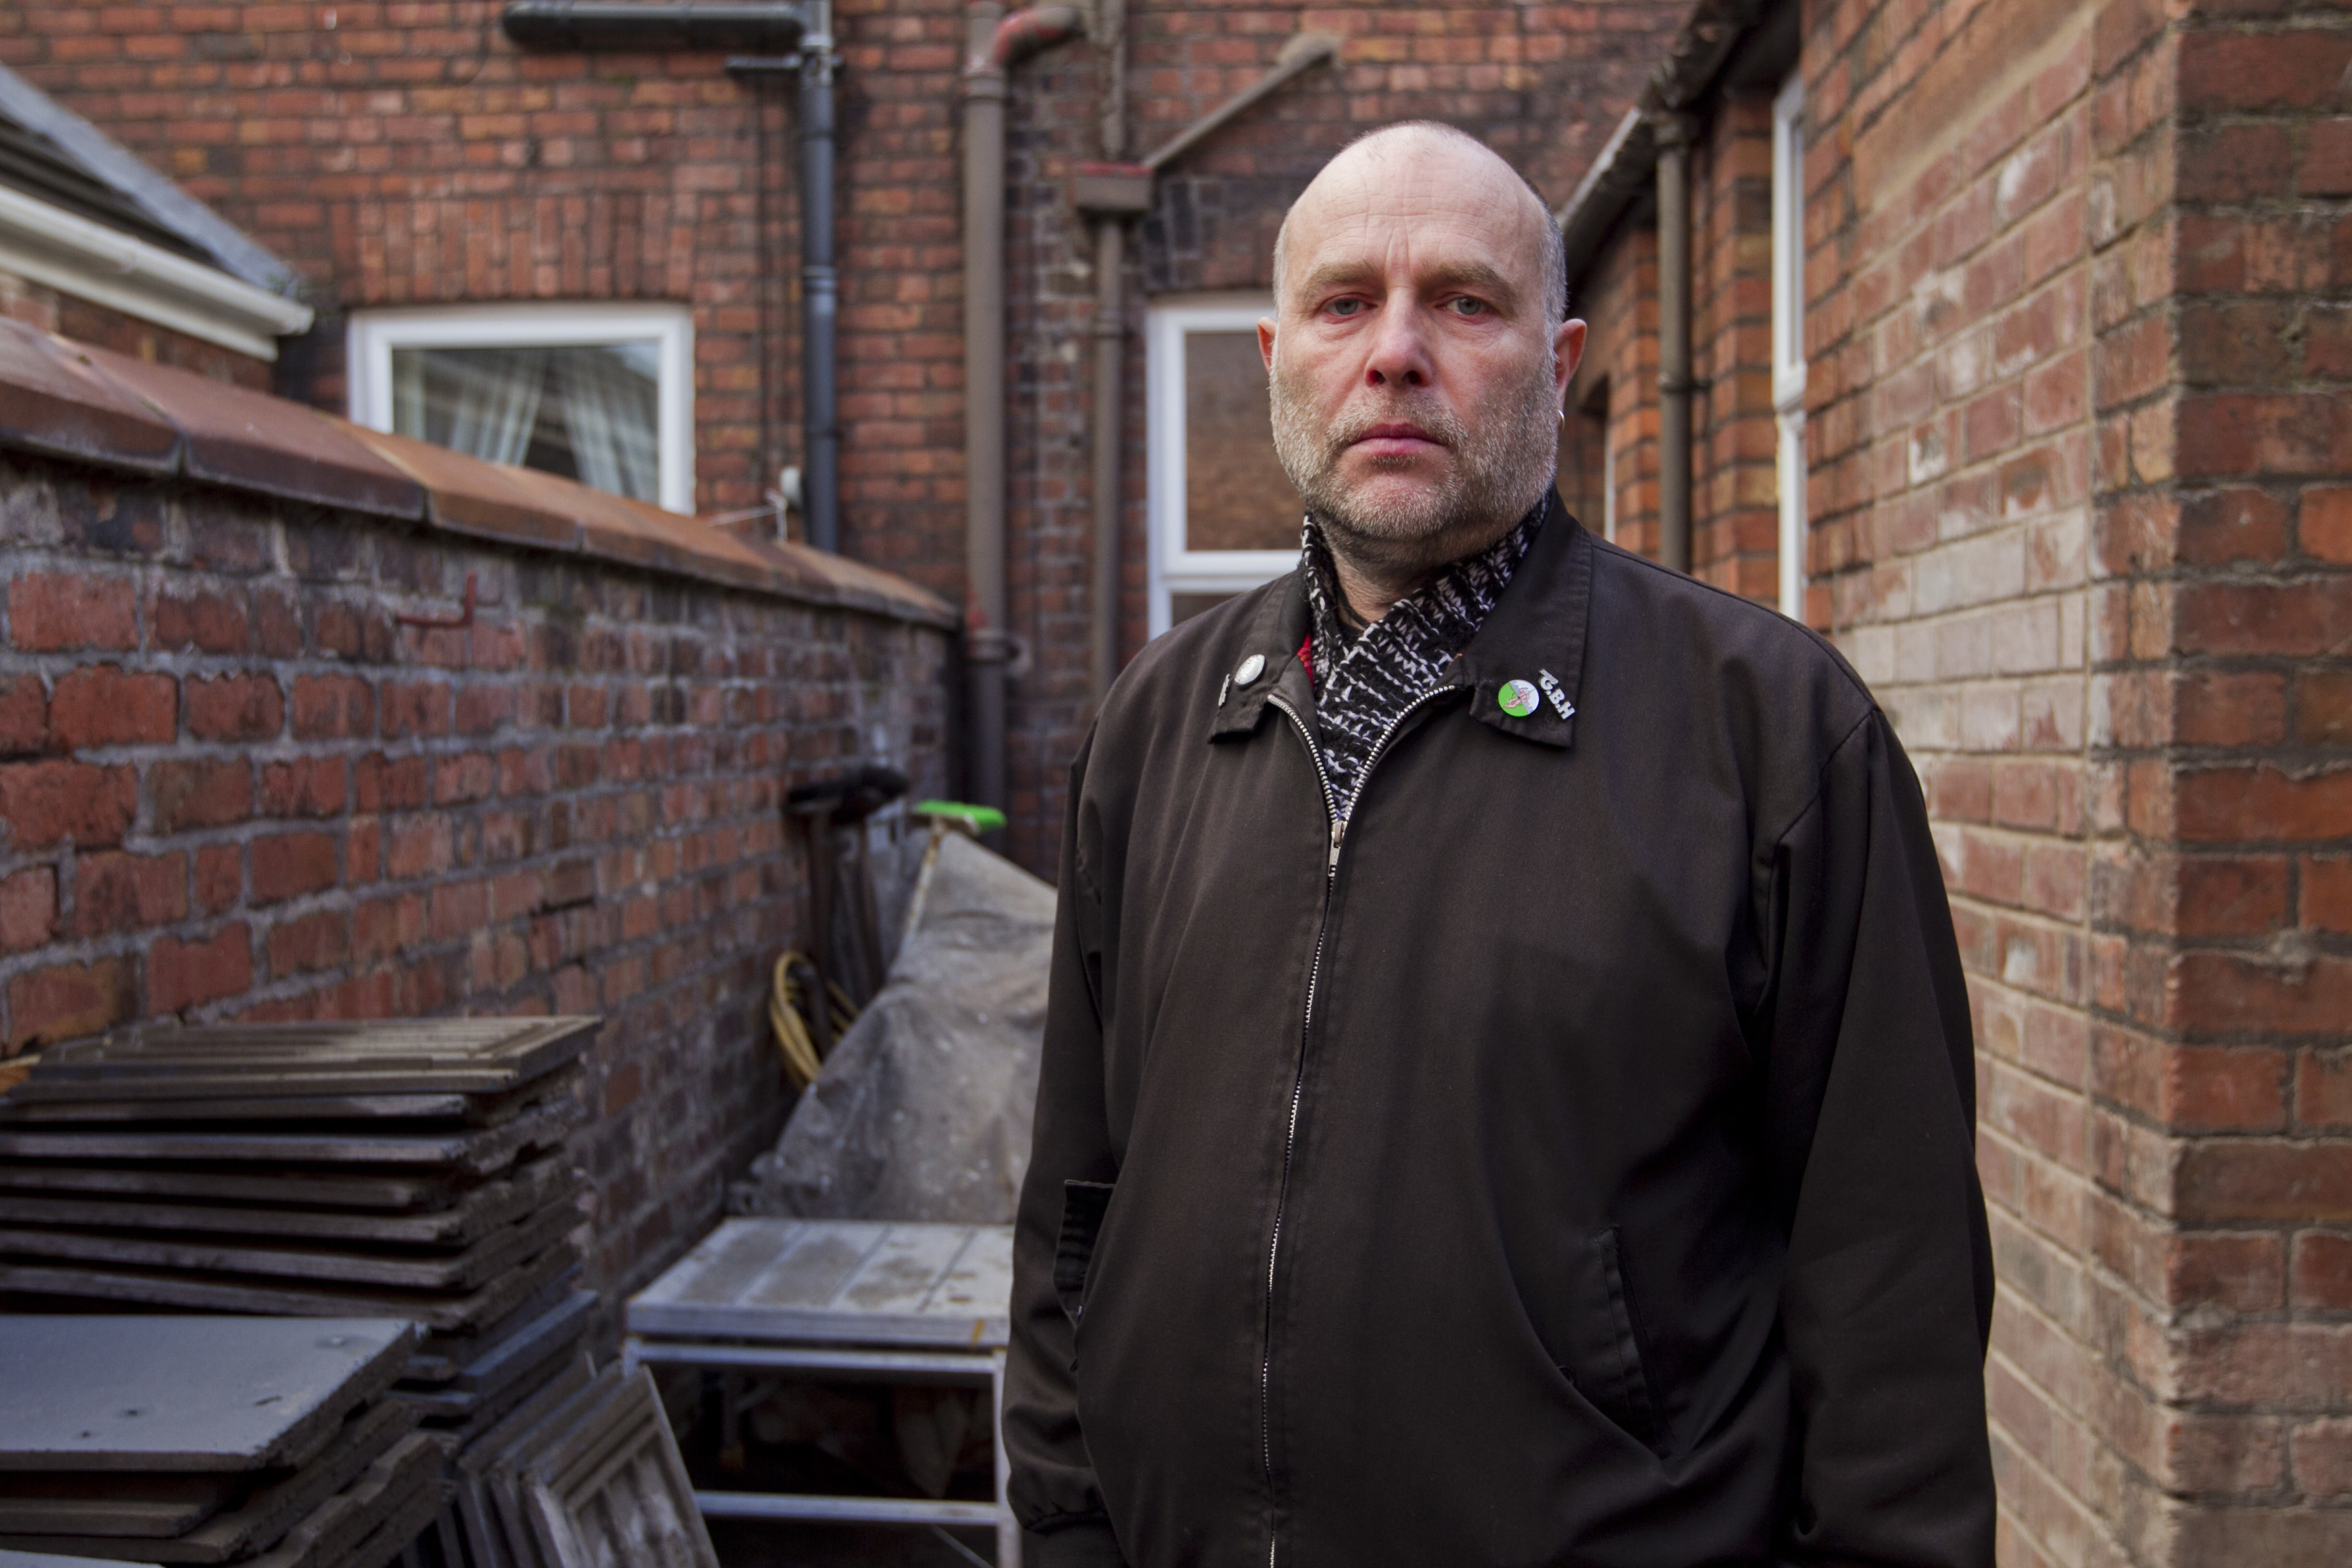 Paul Pearson, who's house was badly damaged in the flooding in Carlisle last year, with building work still on-going on, he cannot move back in yet. (Andrew Cawley)